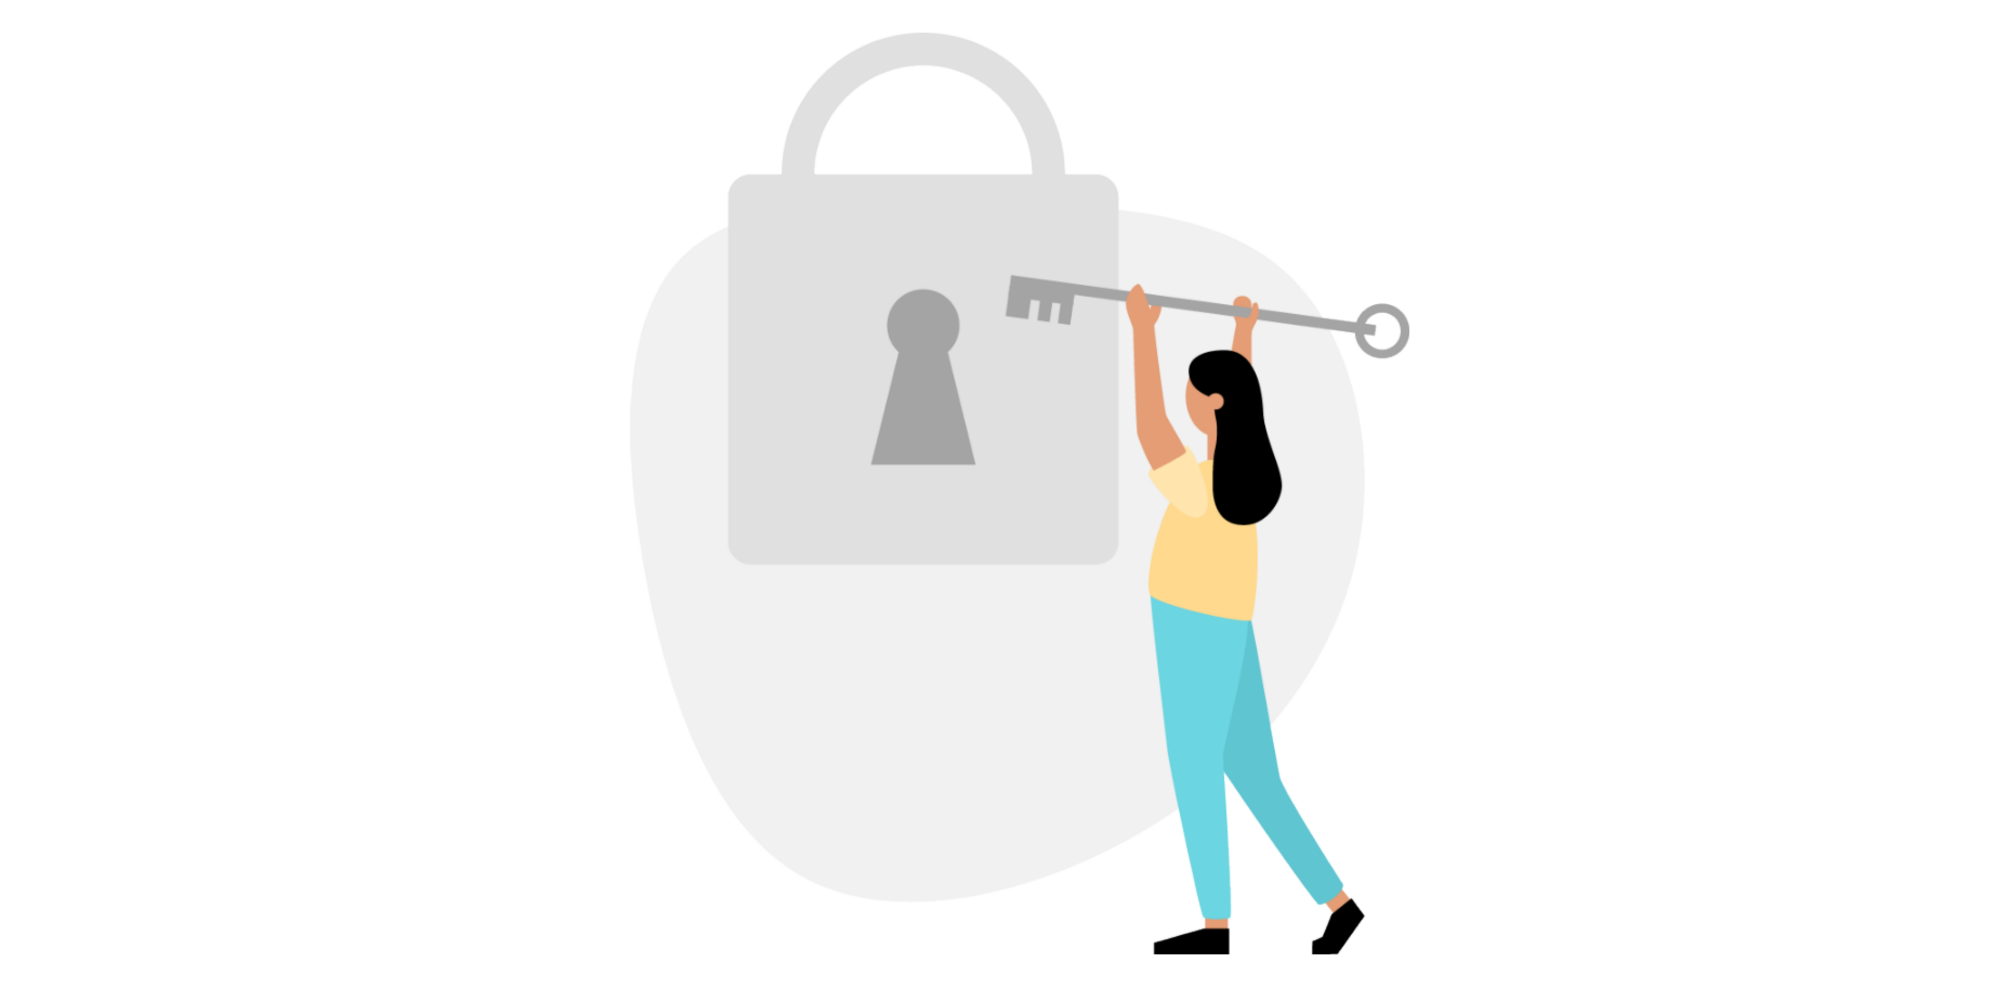 An illustration of a woman opening a lock